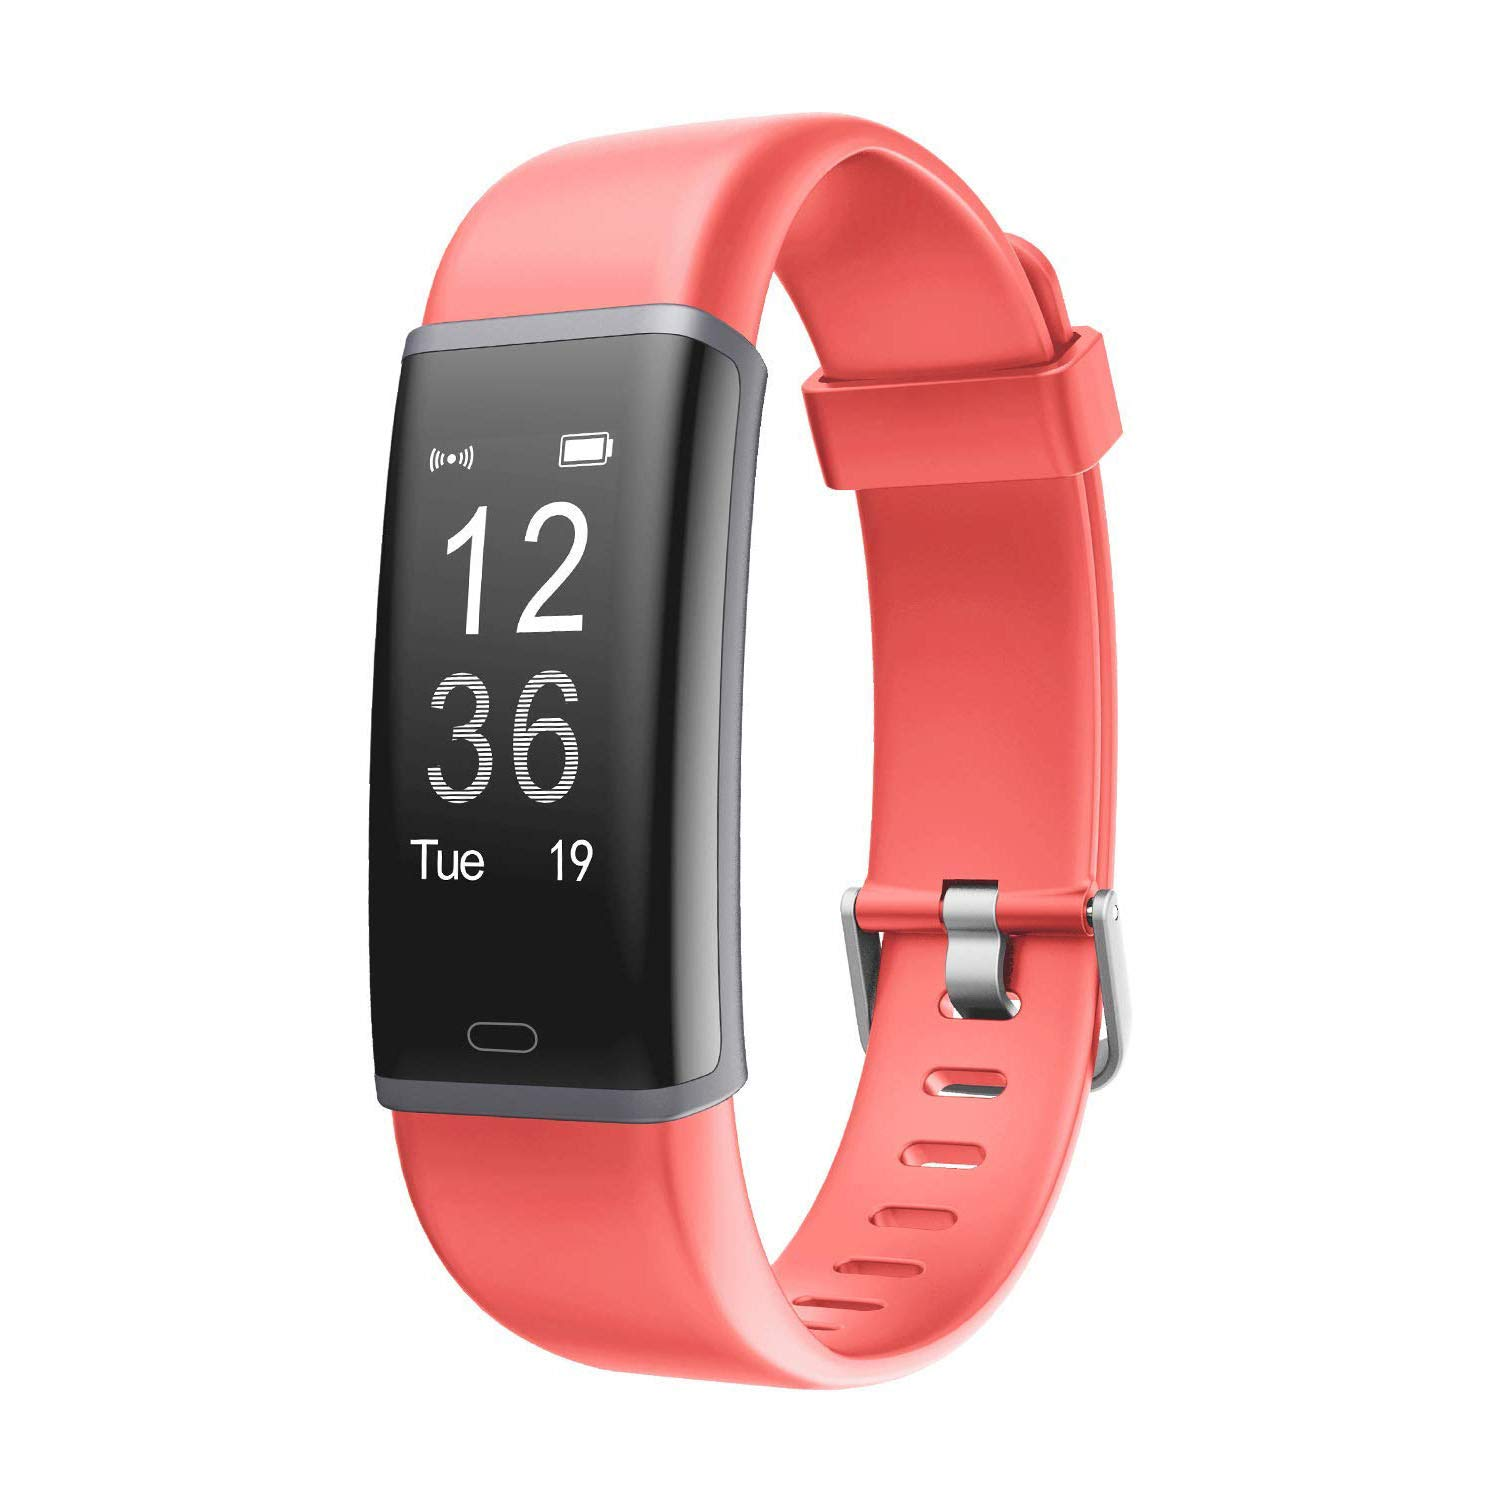 Letsfit Best fitness wrist band under 5000 in India